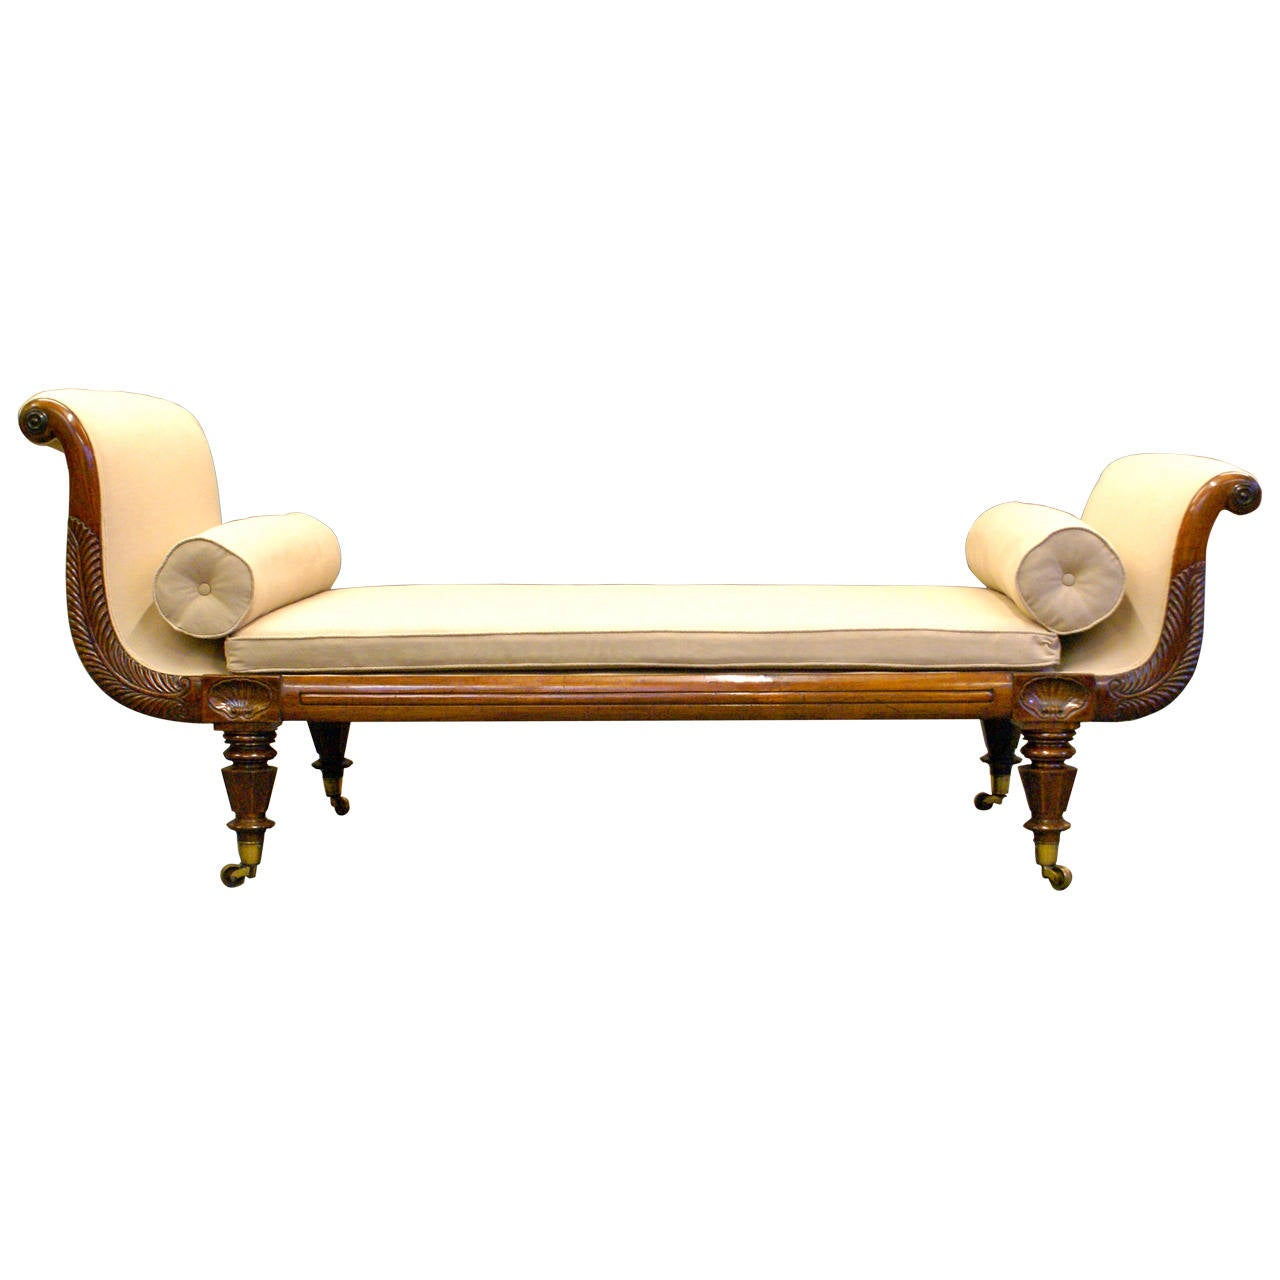 Early victorian rosewood chaise lounge at 1stdibs for Chaise lounge antique victorian